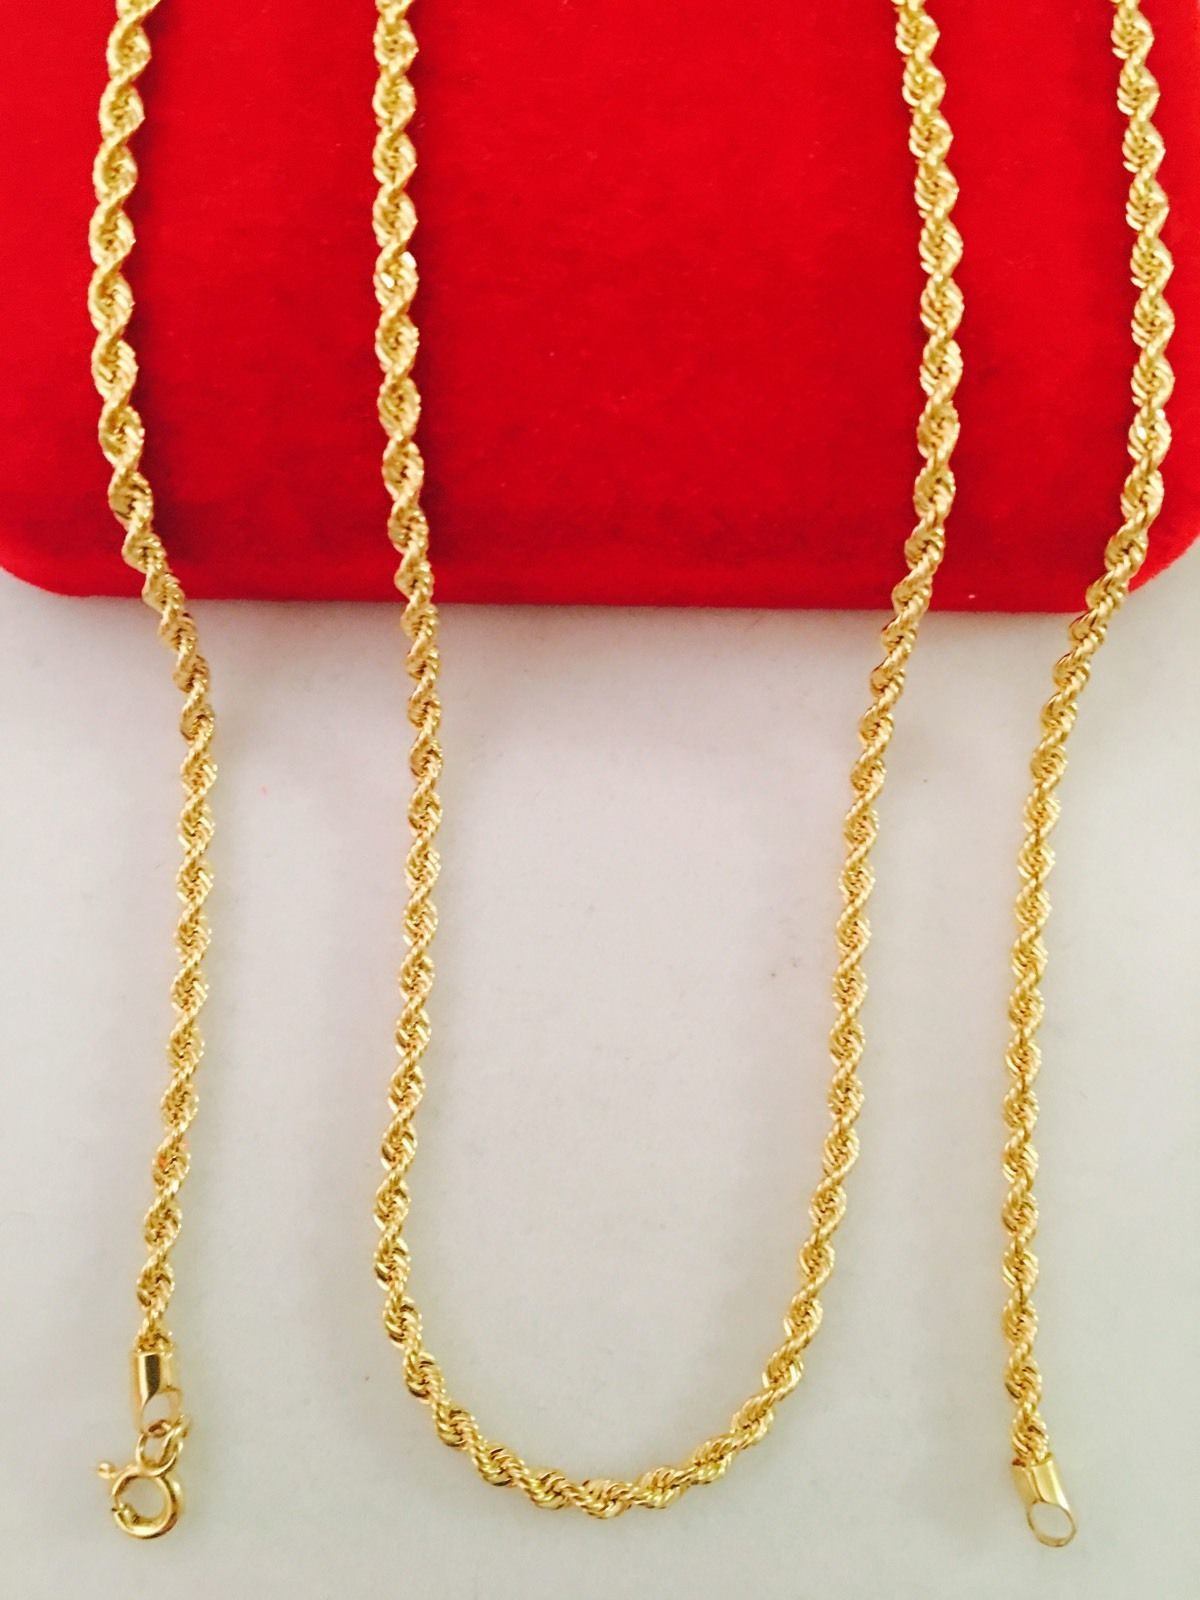 03c85d59d514 14kt Yellow Gold Solid Rope Chain 2.0 mm Width 8.0 Inch Long (2.9 Grams) by  RG D